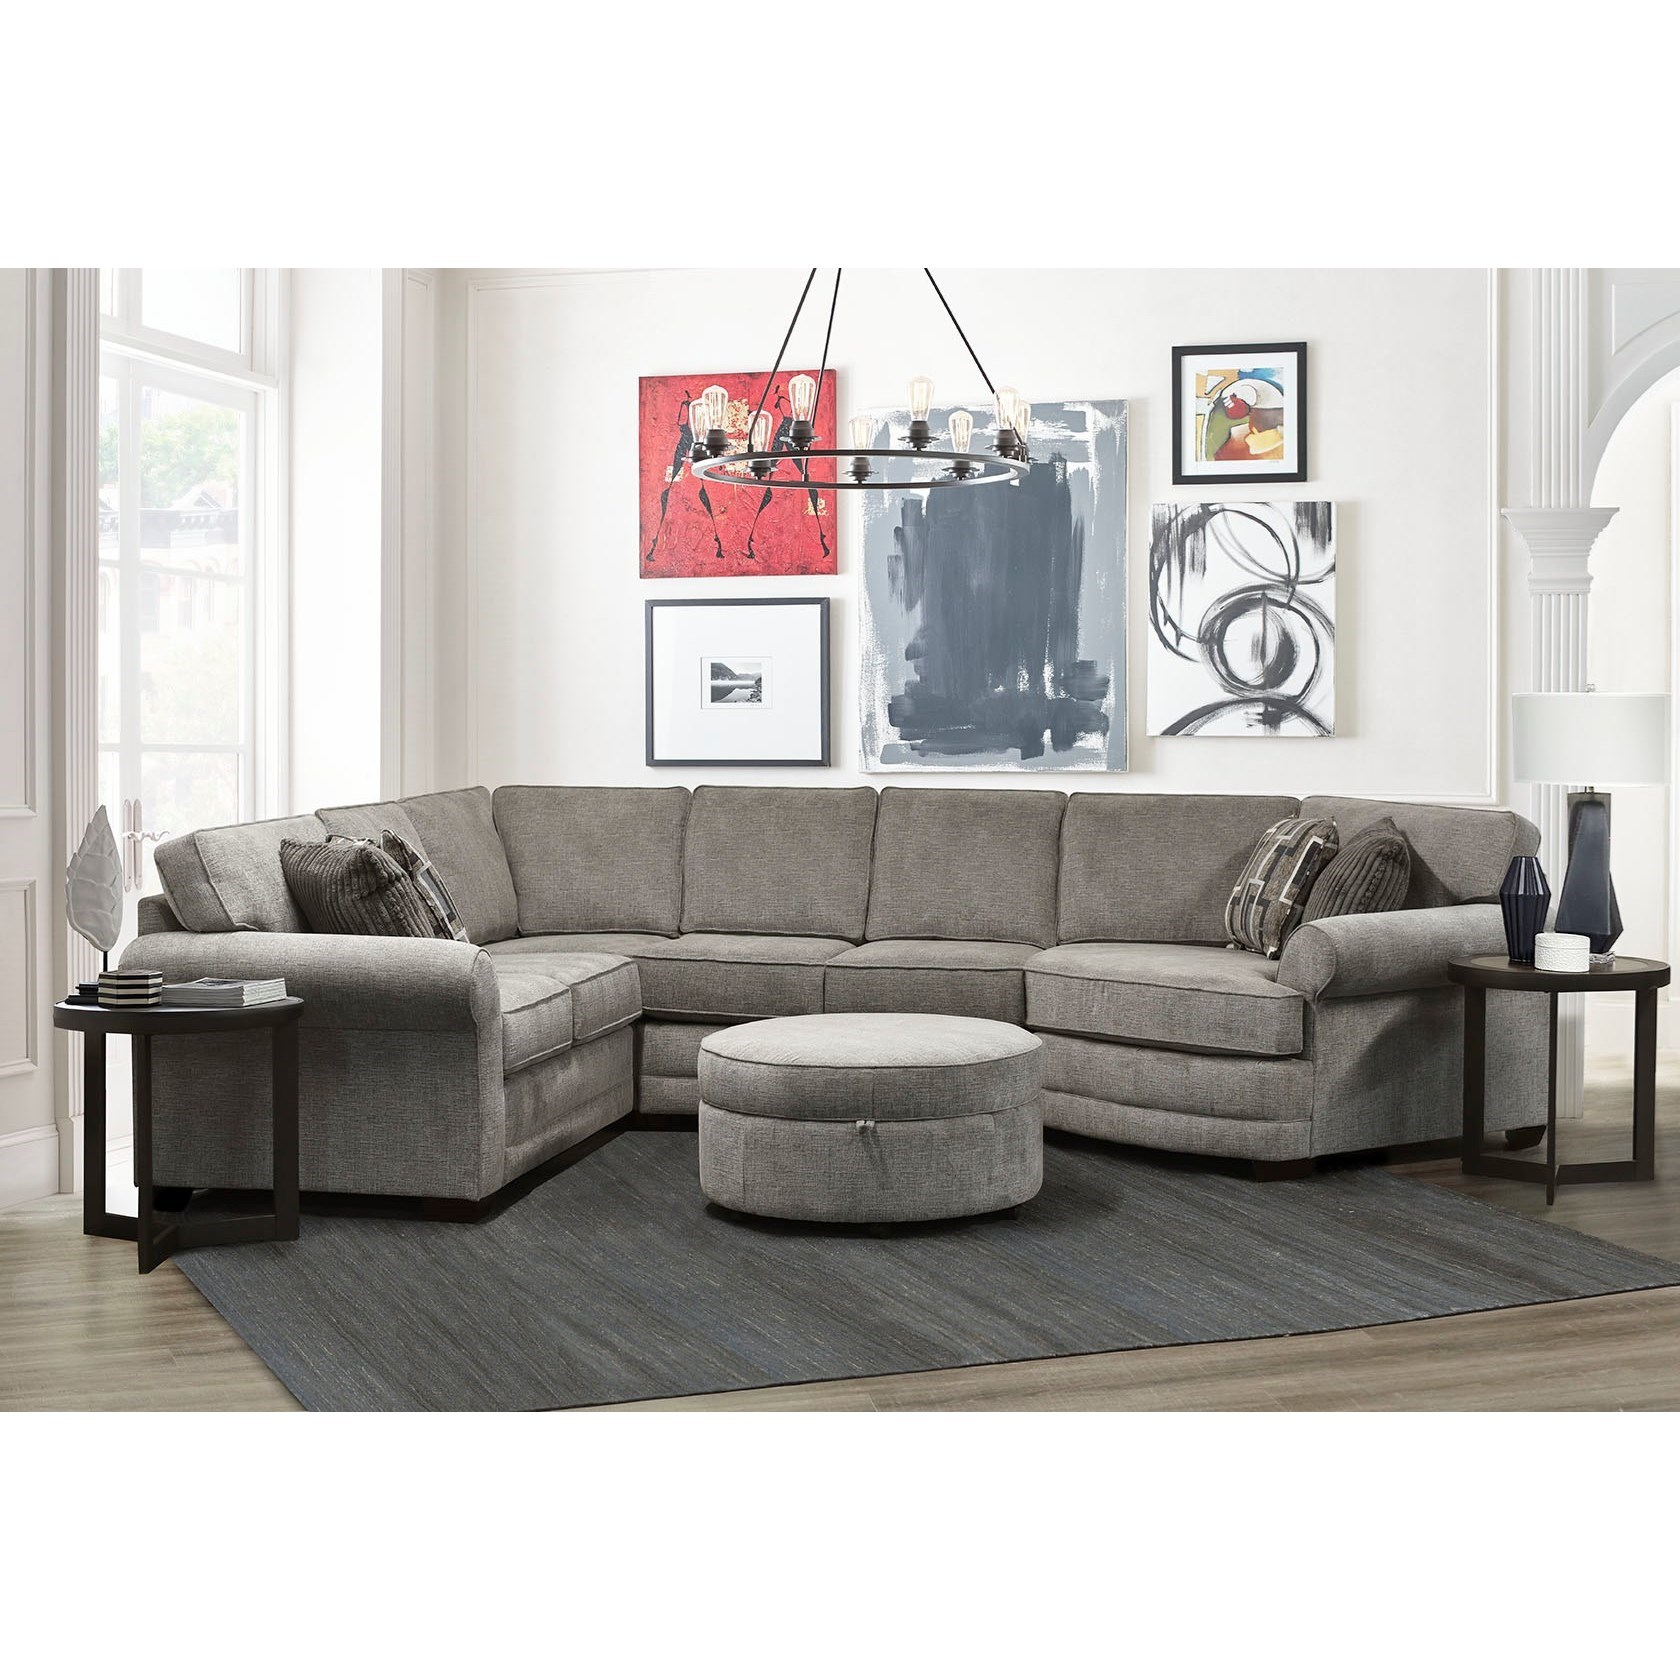 England Brantley 5630 Sect 5 Seat Sectional Sofa With